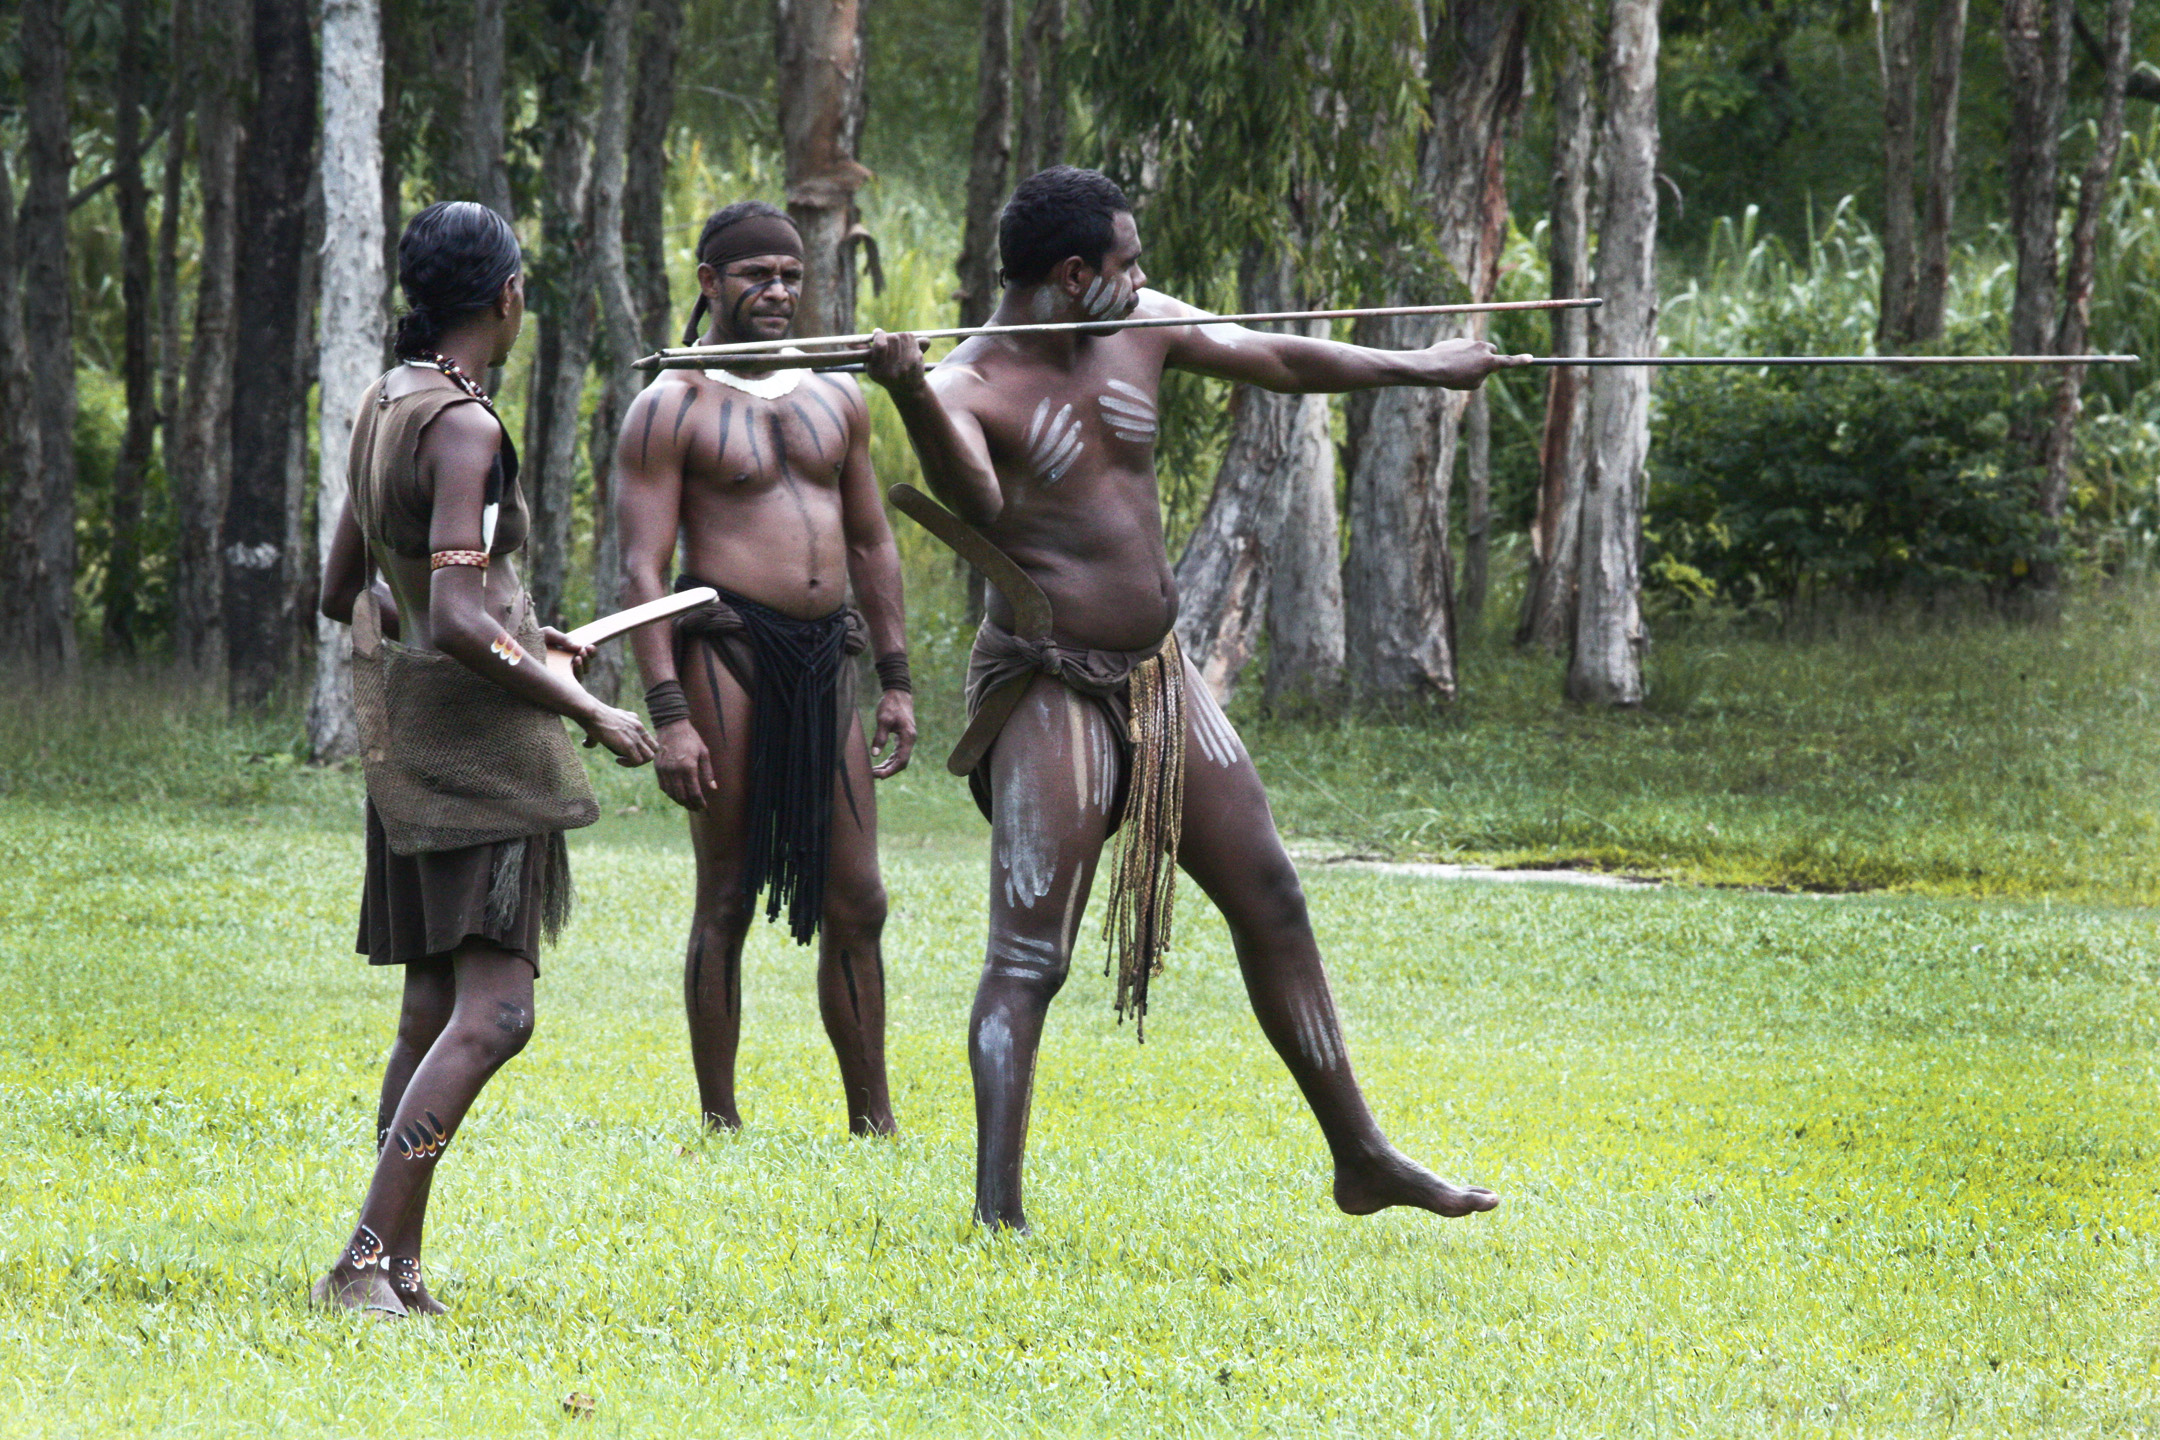 File:Australia Aboriginal Culture 011.jpg - Wikimedia Commons